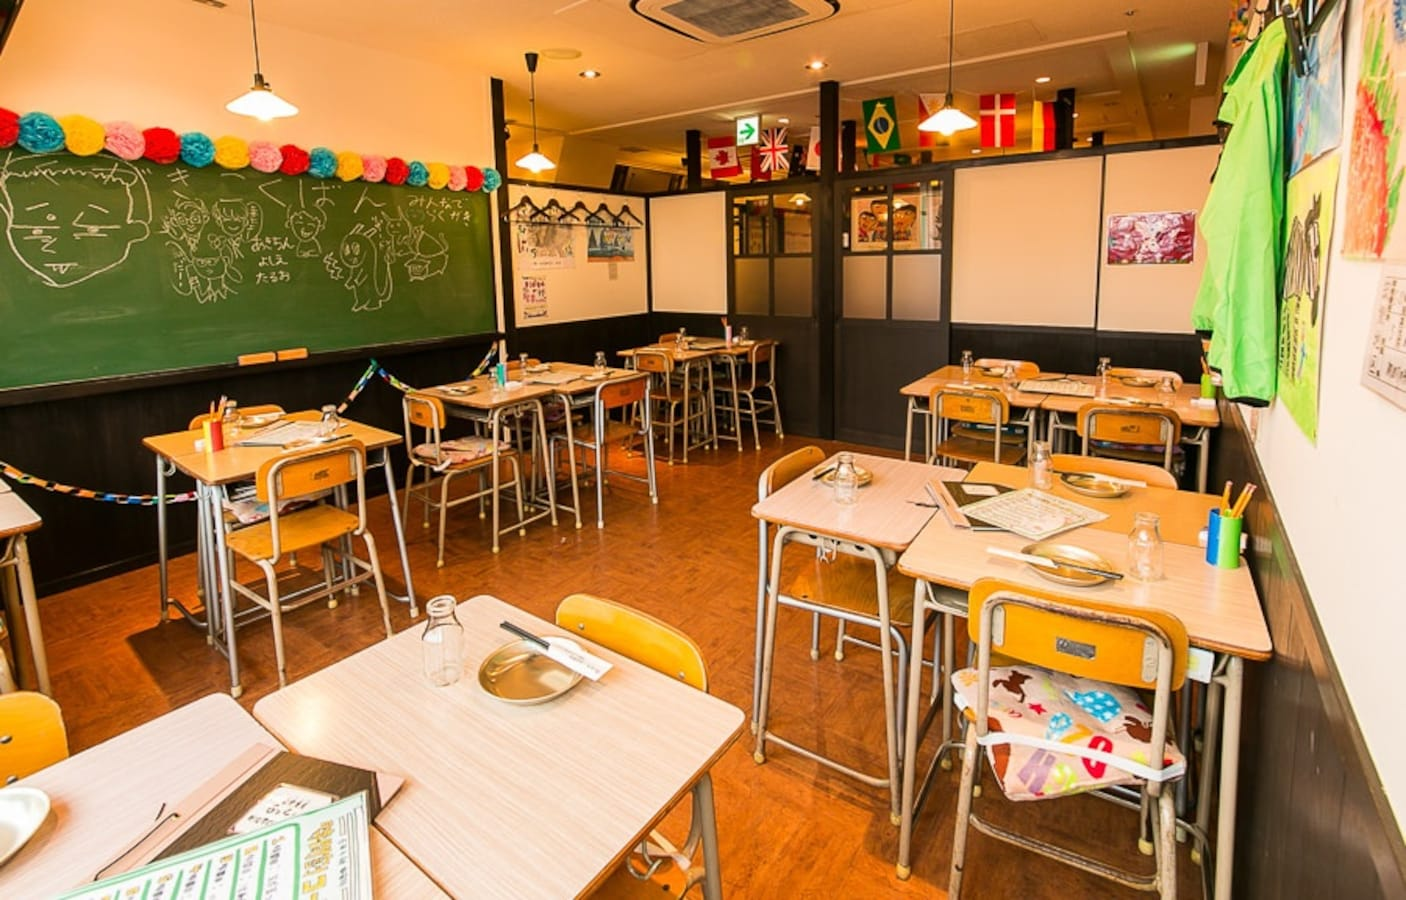 Japanese Classroom Design ~ Step into a japanese classroom at this izakaya all about